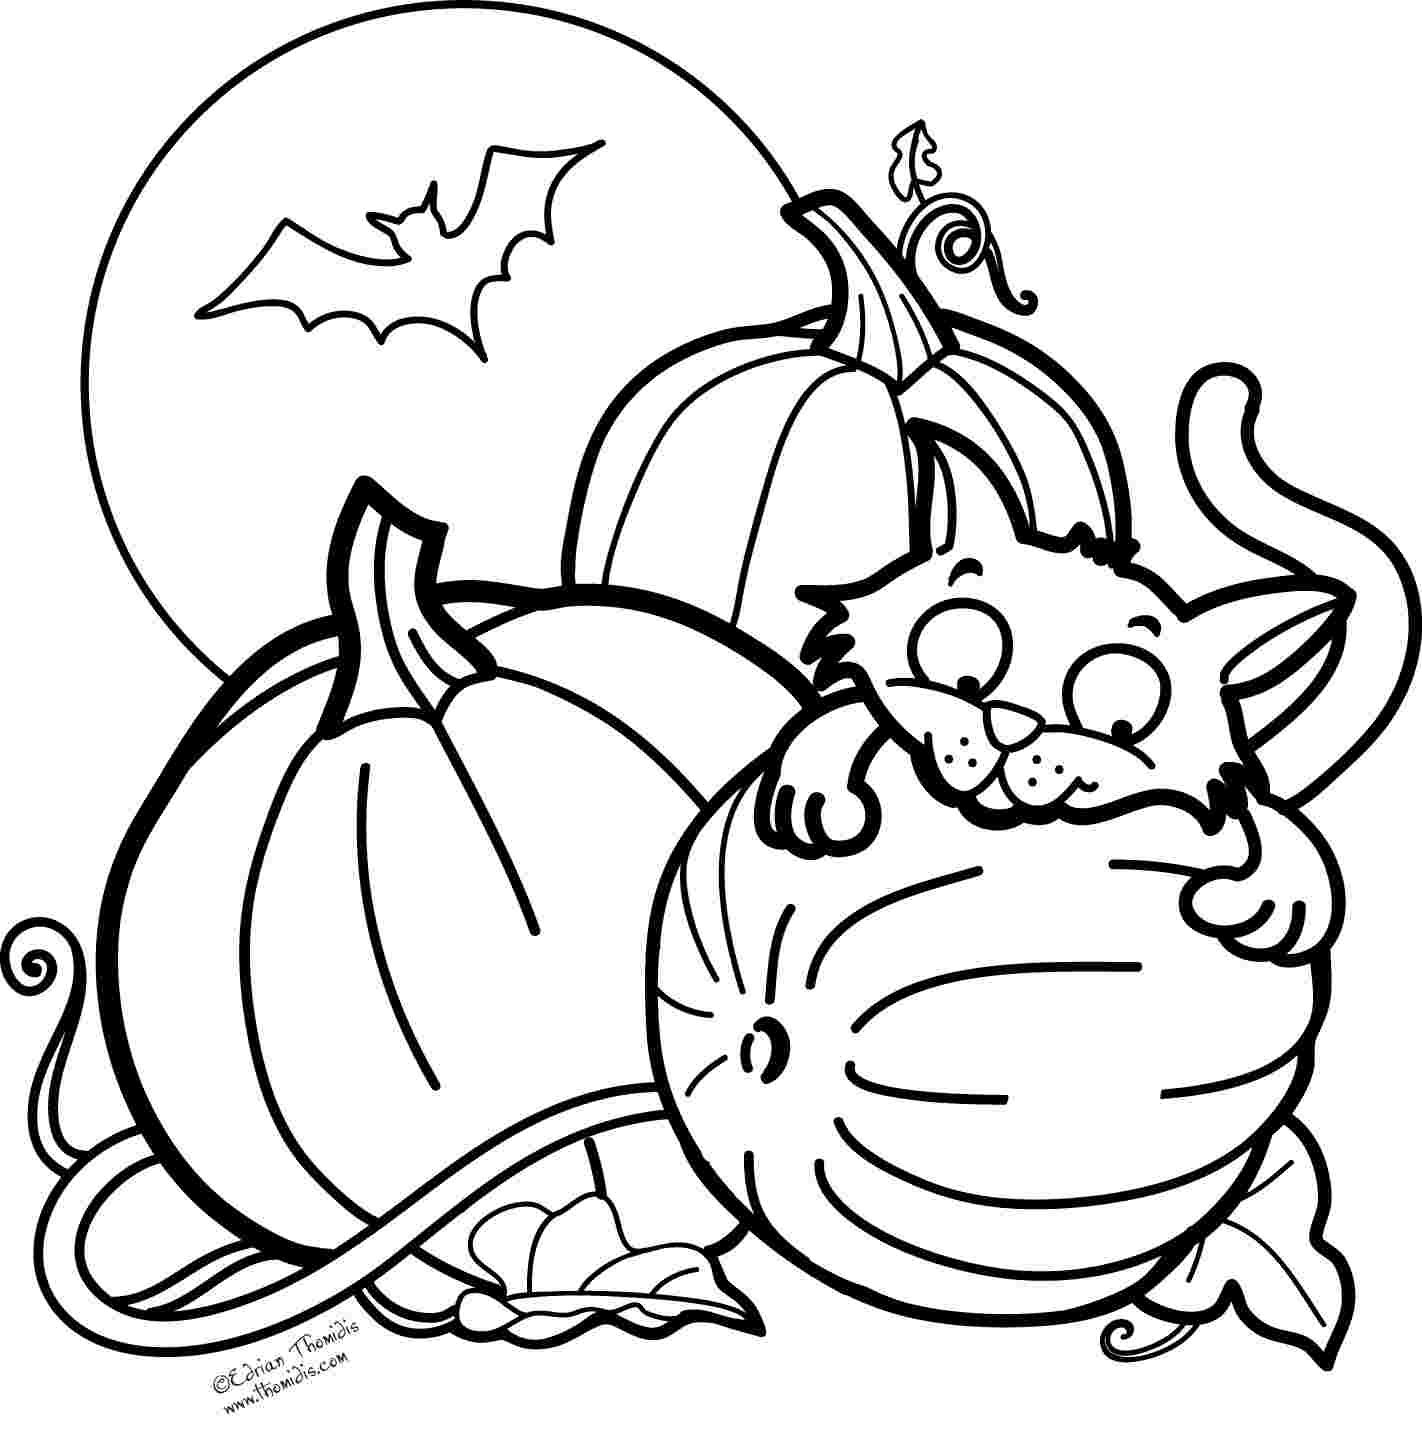 Coloring Pages Halloween Cats Black Cat Page For Christmas Colorful Easy Pattern Hard Fairy Bat Pokemon With 4 Wings Easter Bunny Do Warna Gambar Gambar Kartun